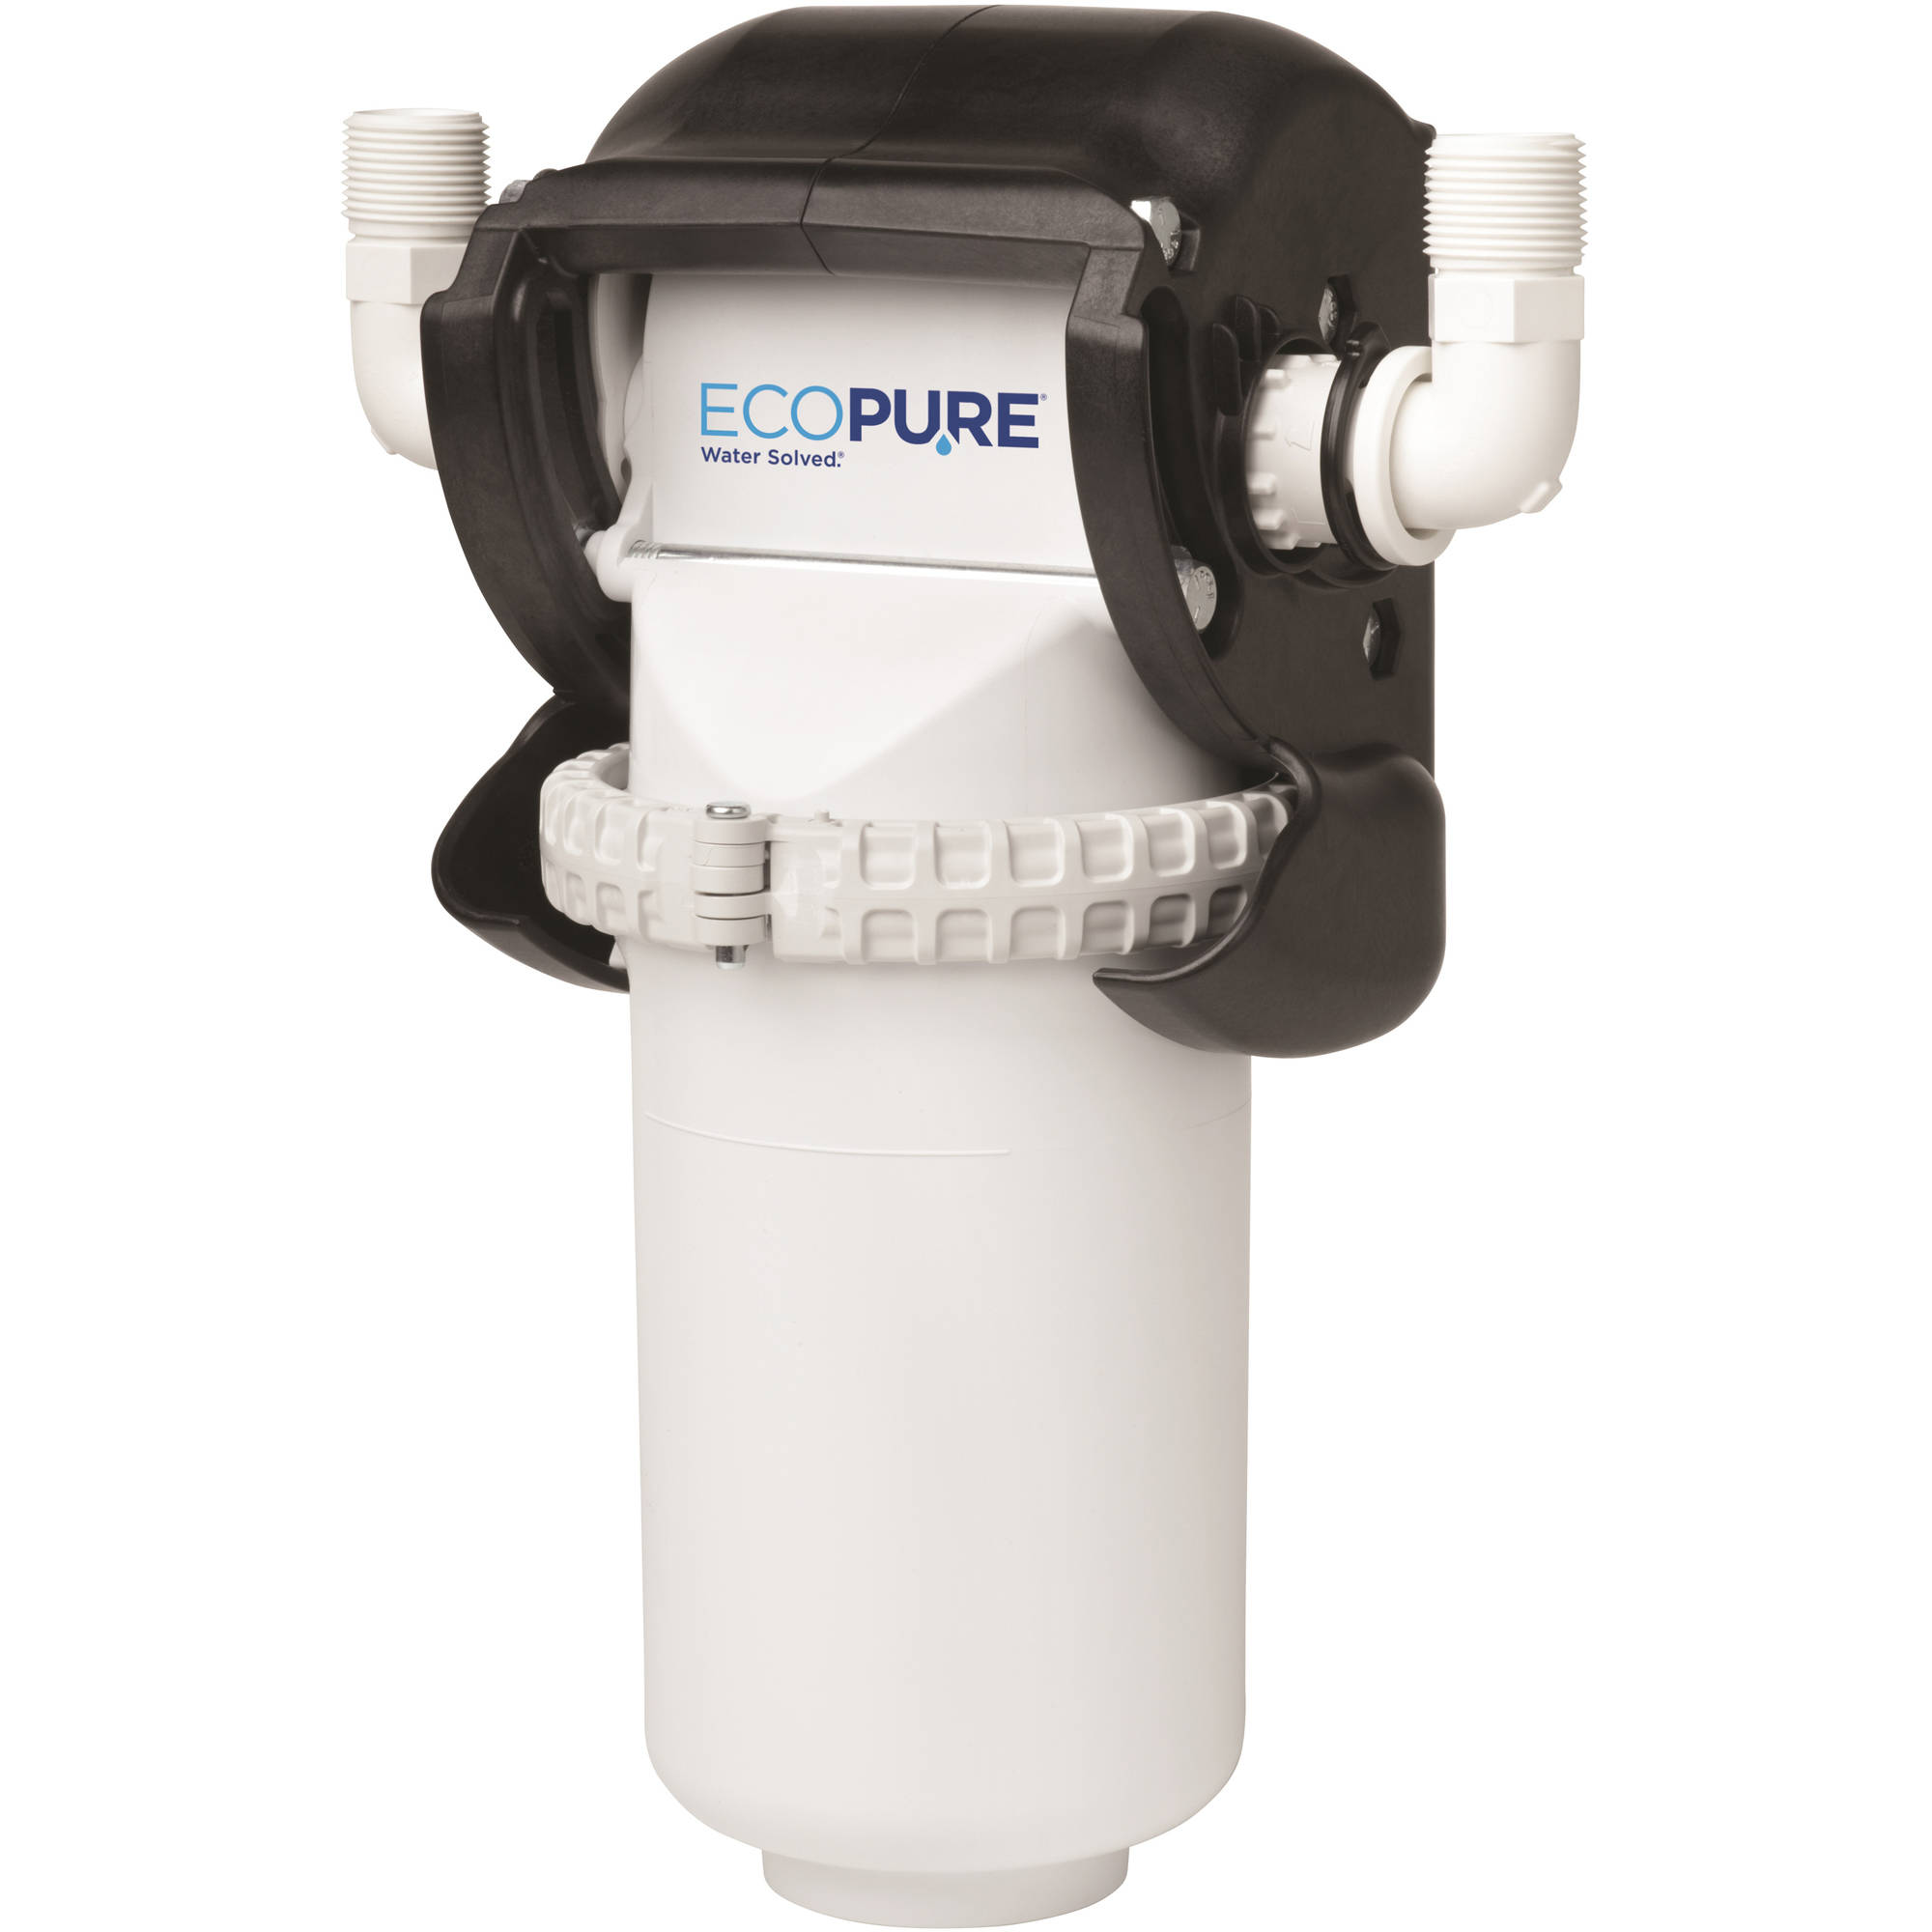 EcoPure No Mess Whole Home Water Filtration System